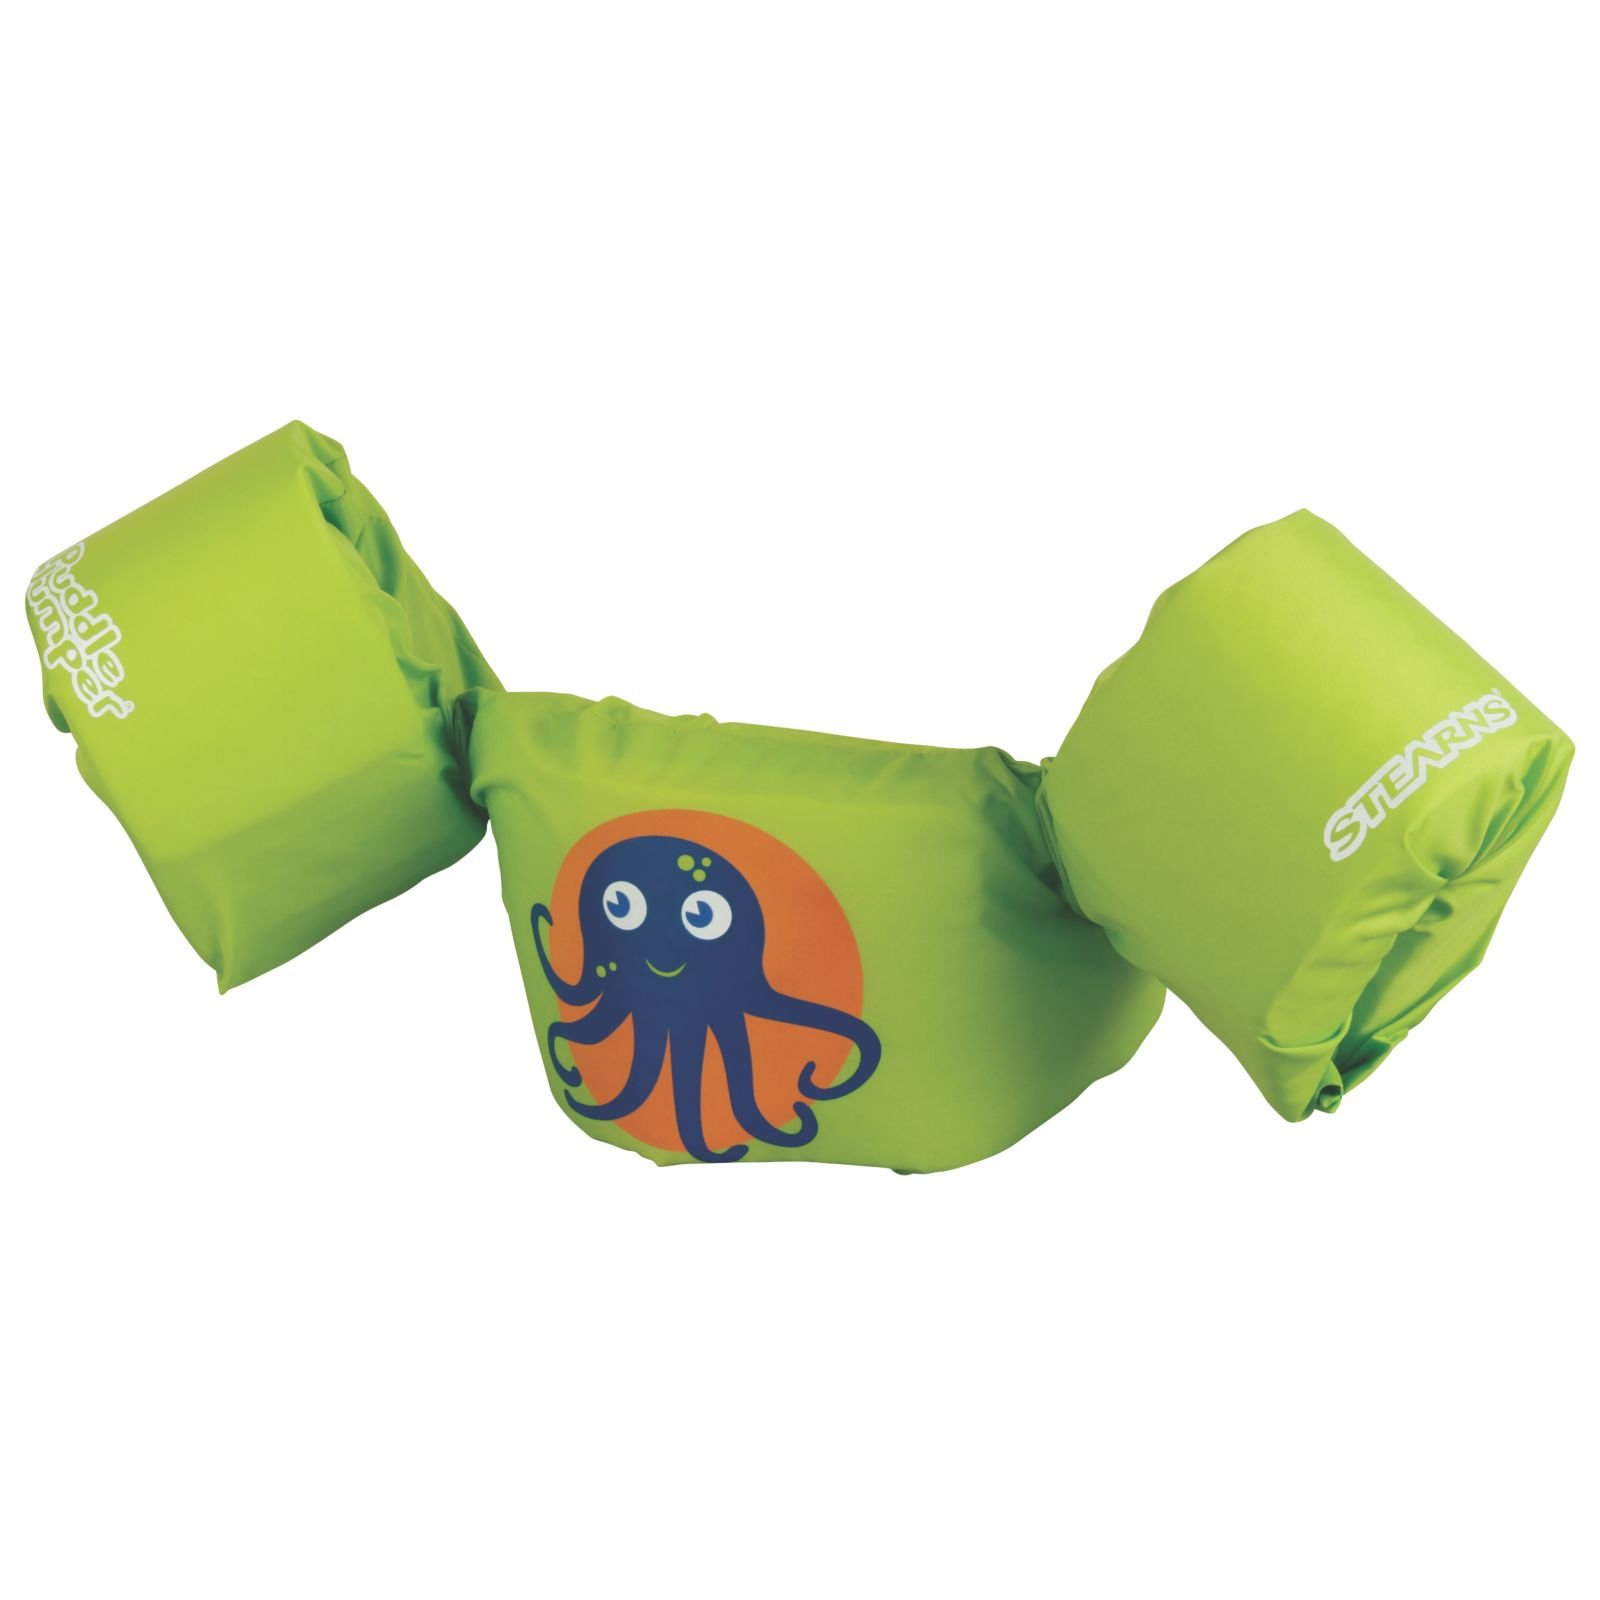 Stearns Puddle Jumper Child Life Jacket, Green Octopus